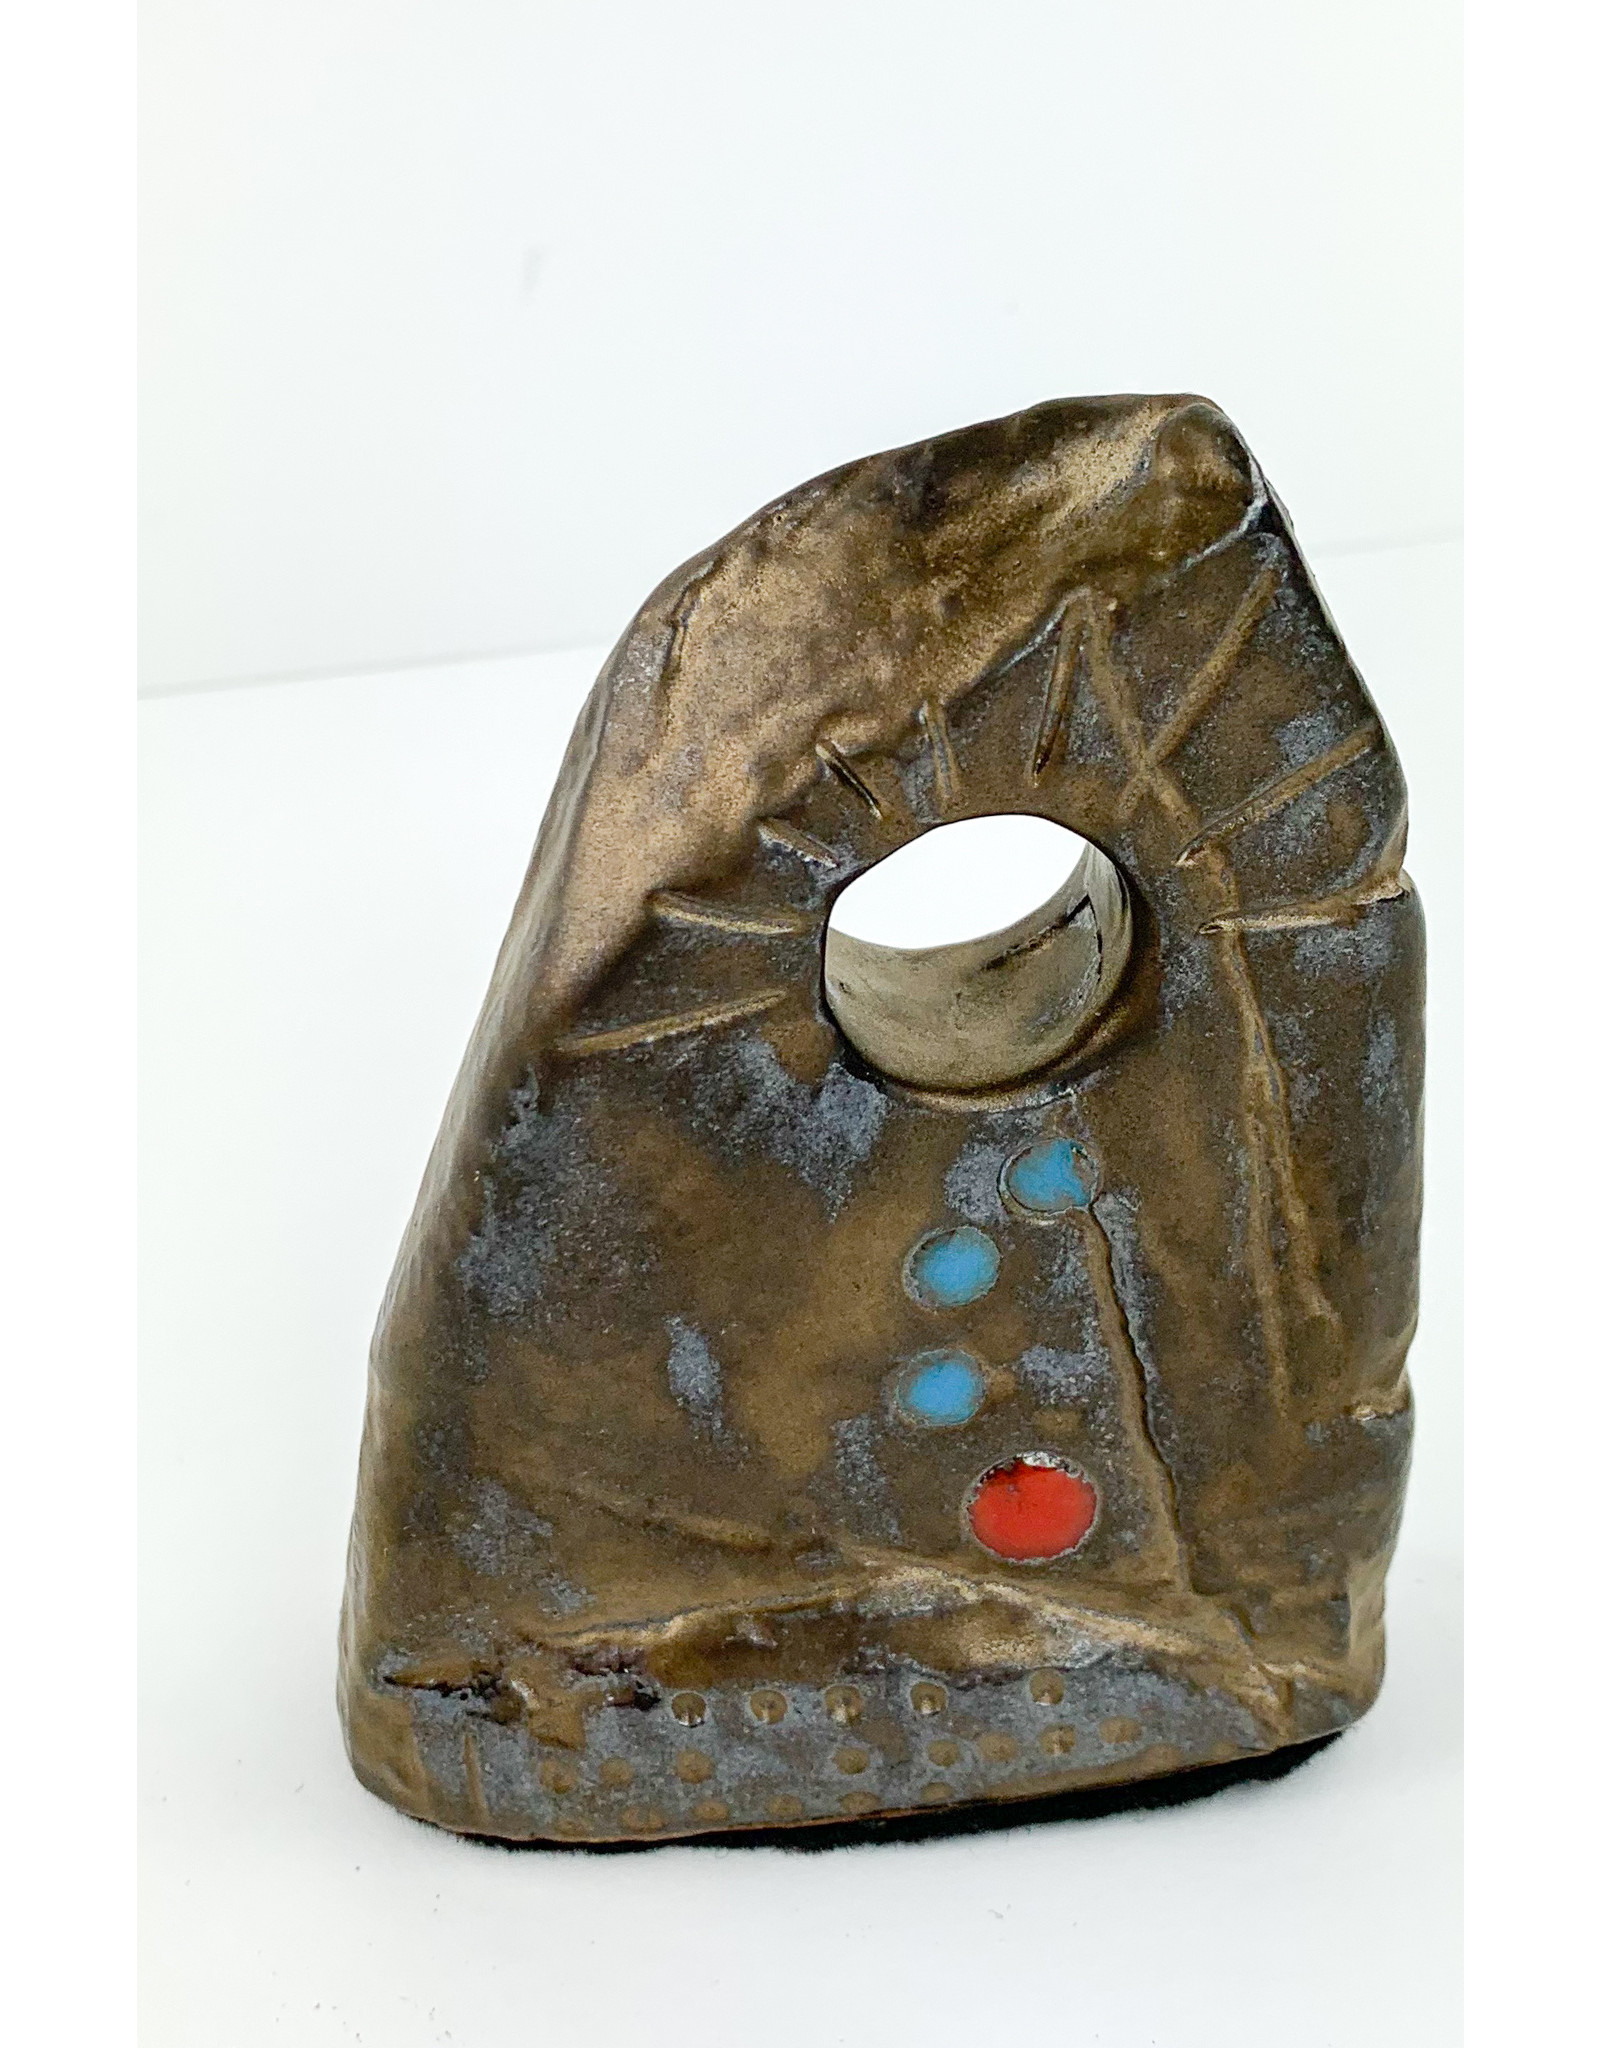 Frog town Pottery-consignment Monolith Med (768)d